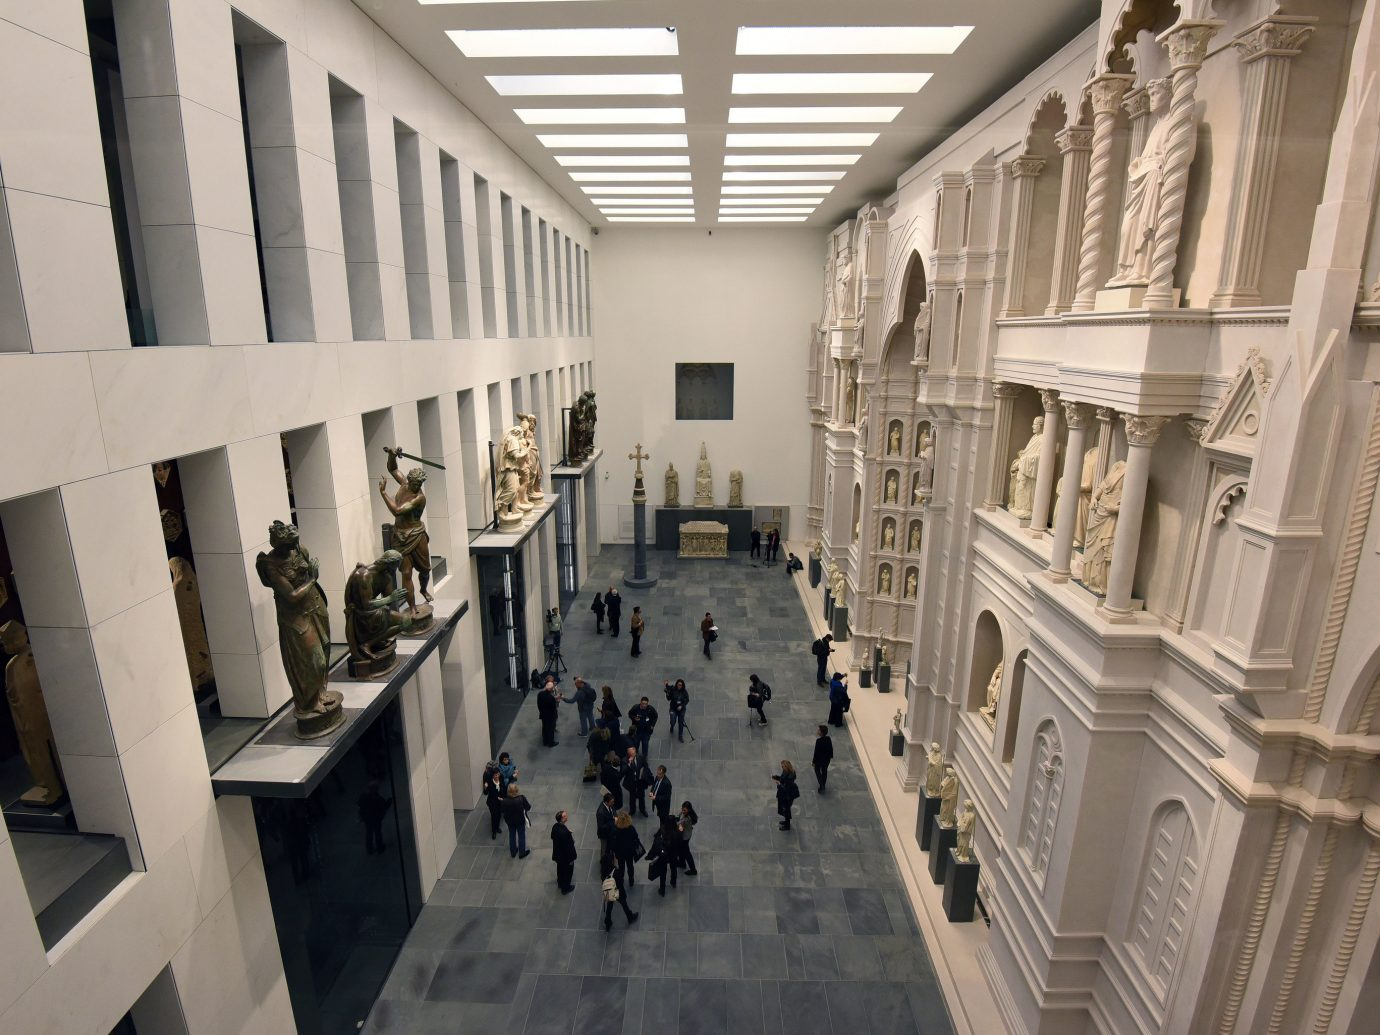 Arts + Culture indoor building Architecture tourist attraction museum interior design hall art gallery colonnade